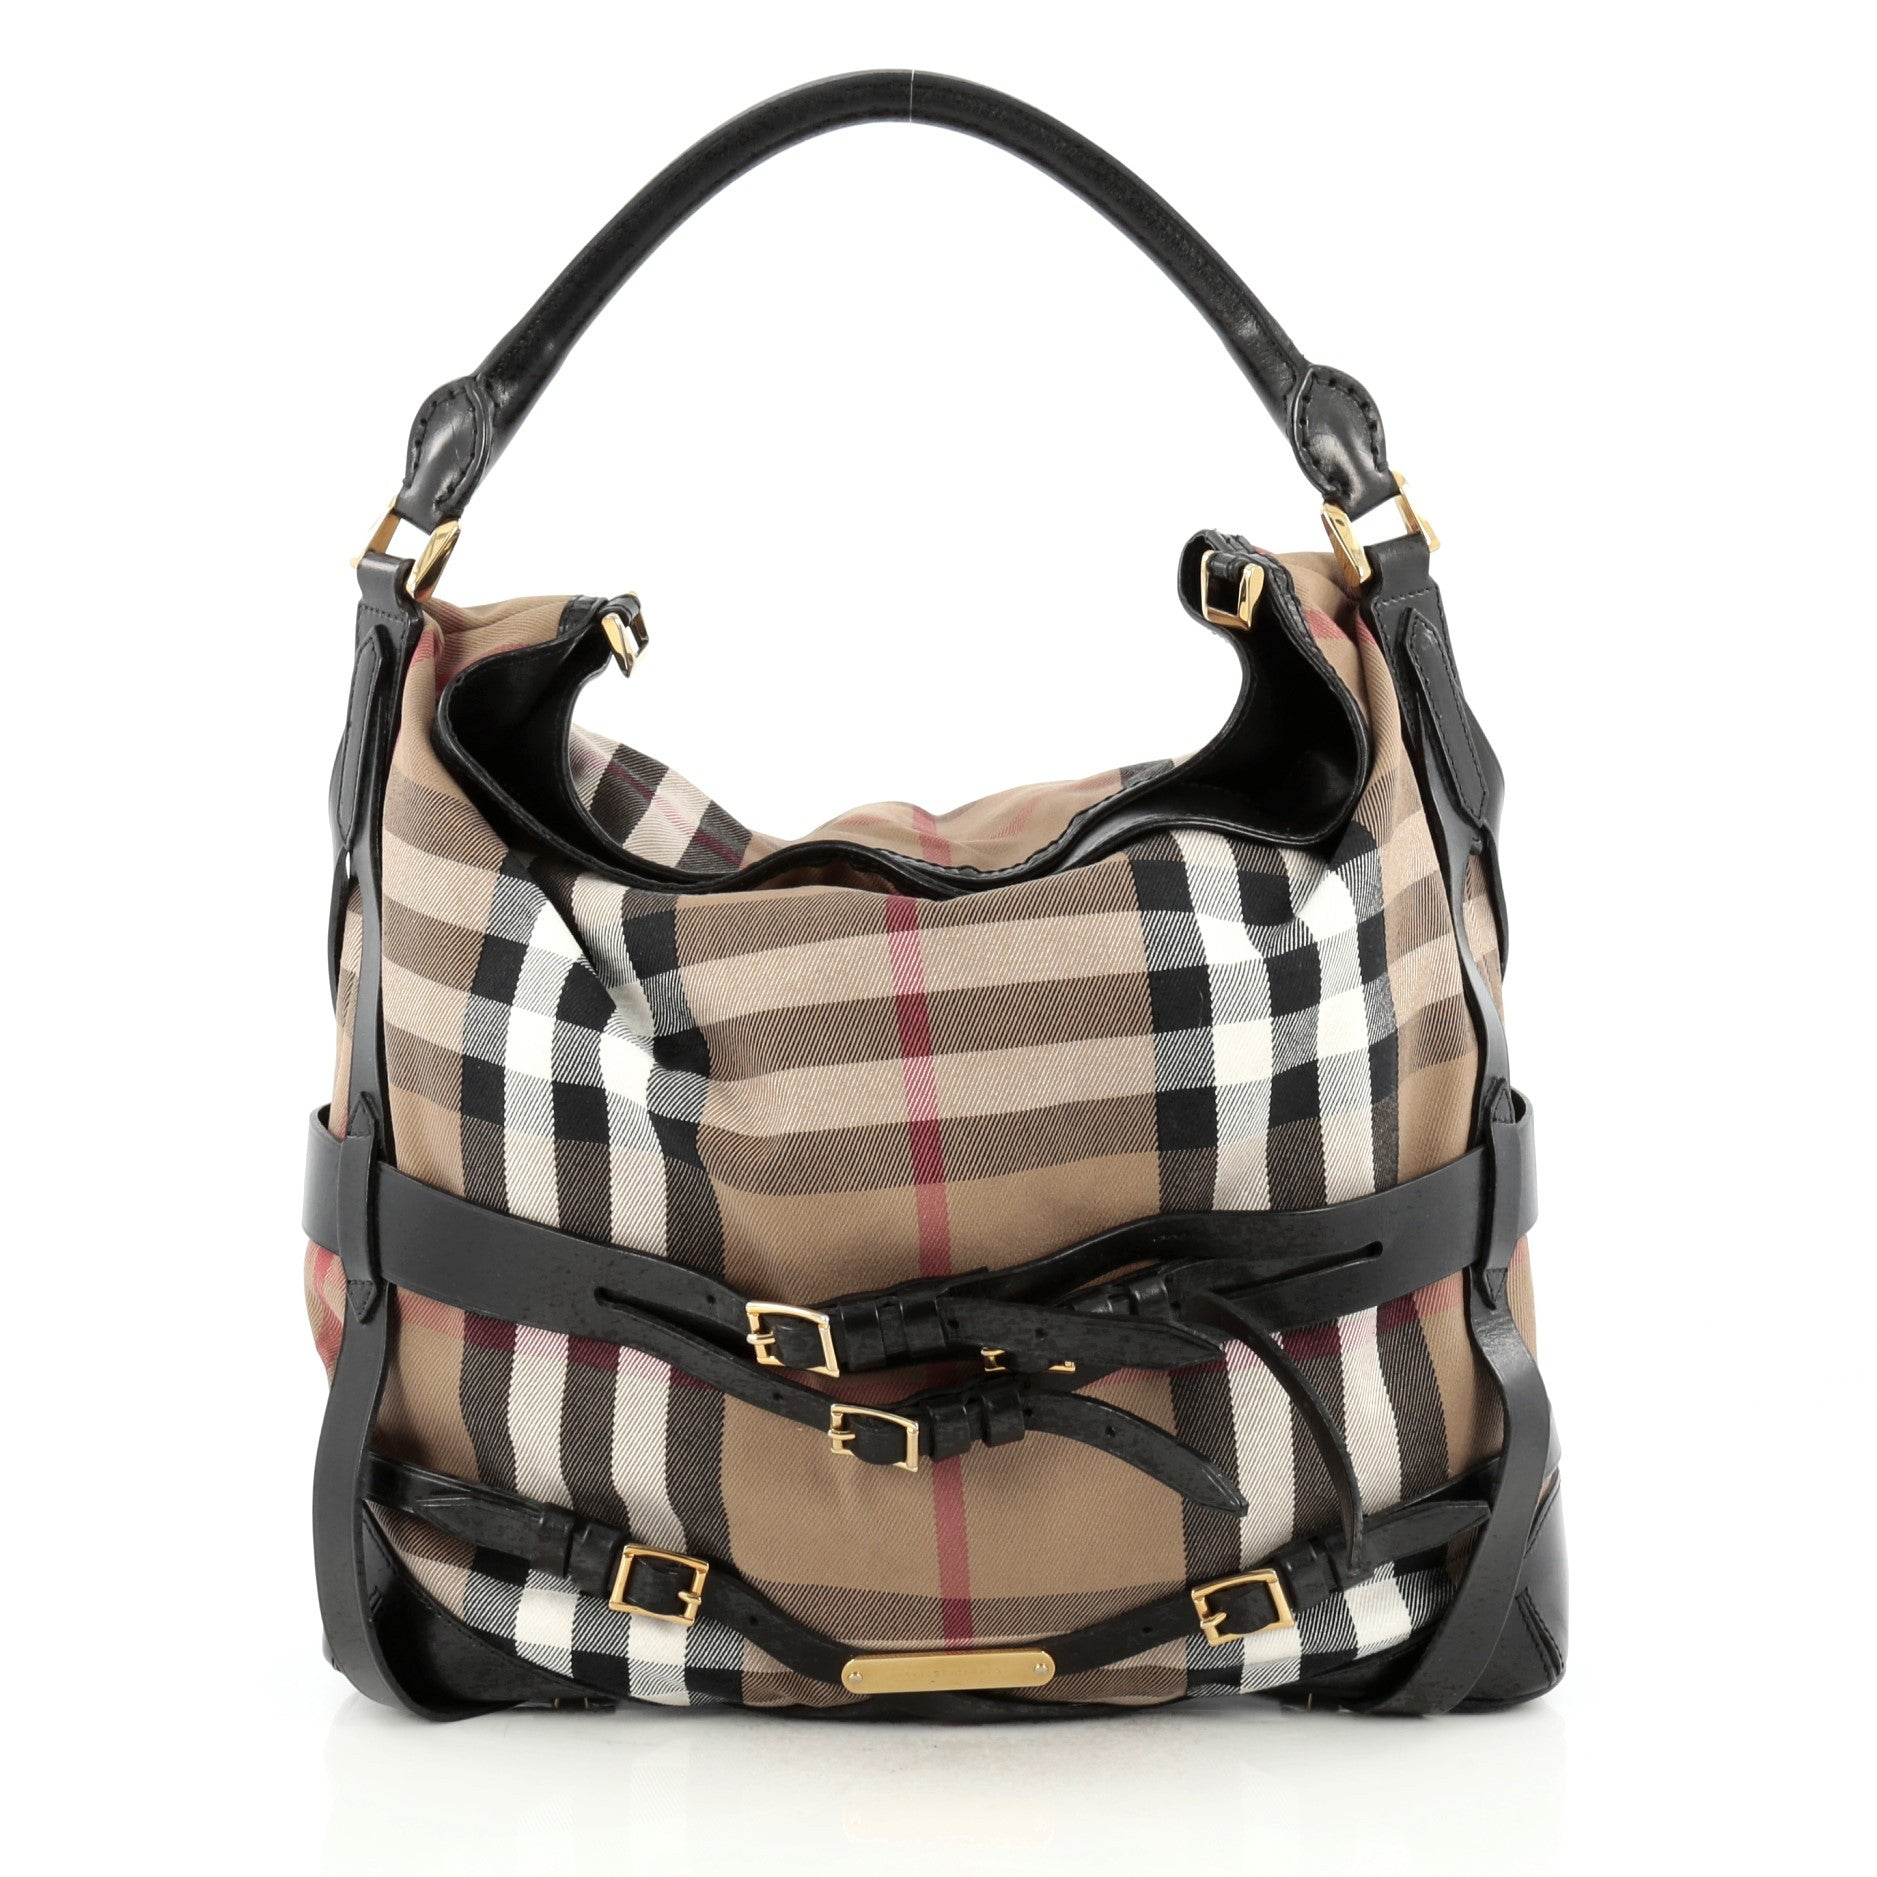 4aa9d6c057f6 16571-01 Burberry Bridle Gosford Hobo House Check 2D 0003.jpg v 1488303656